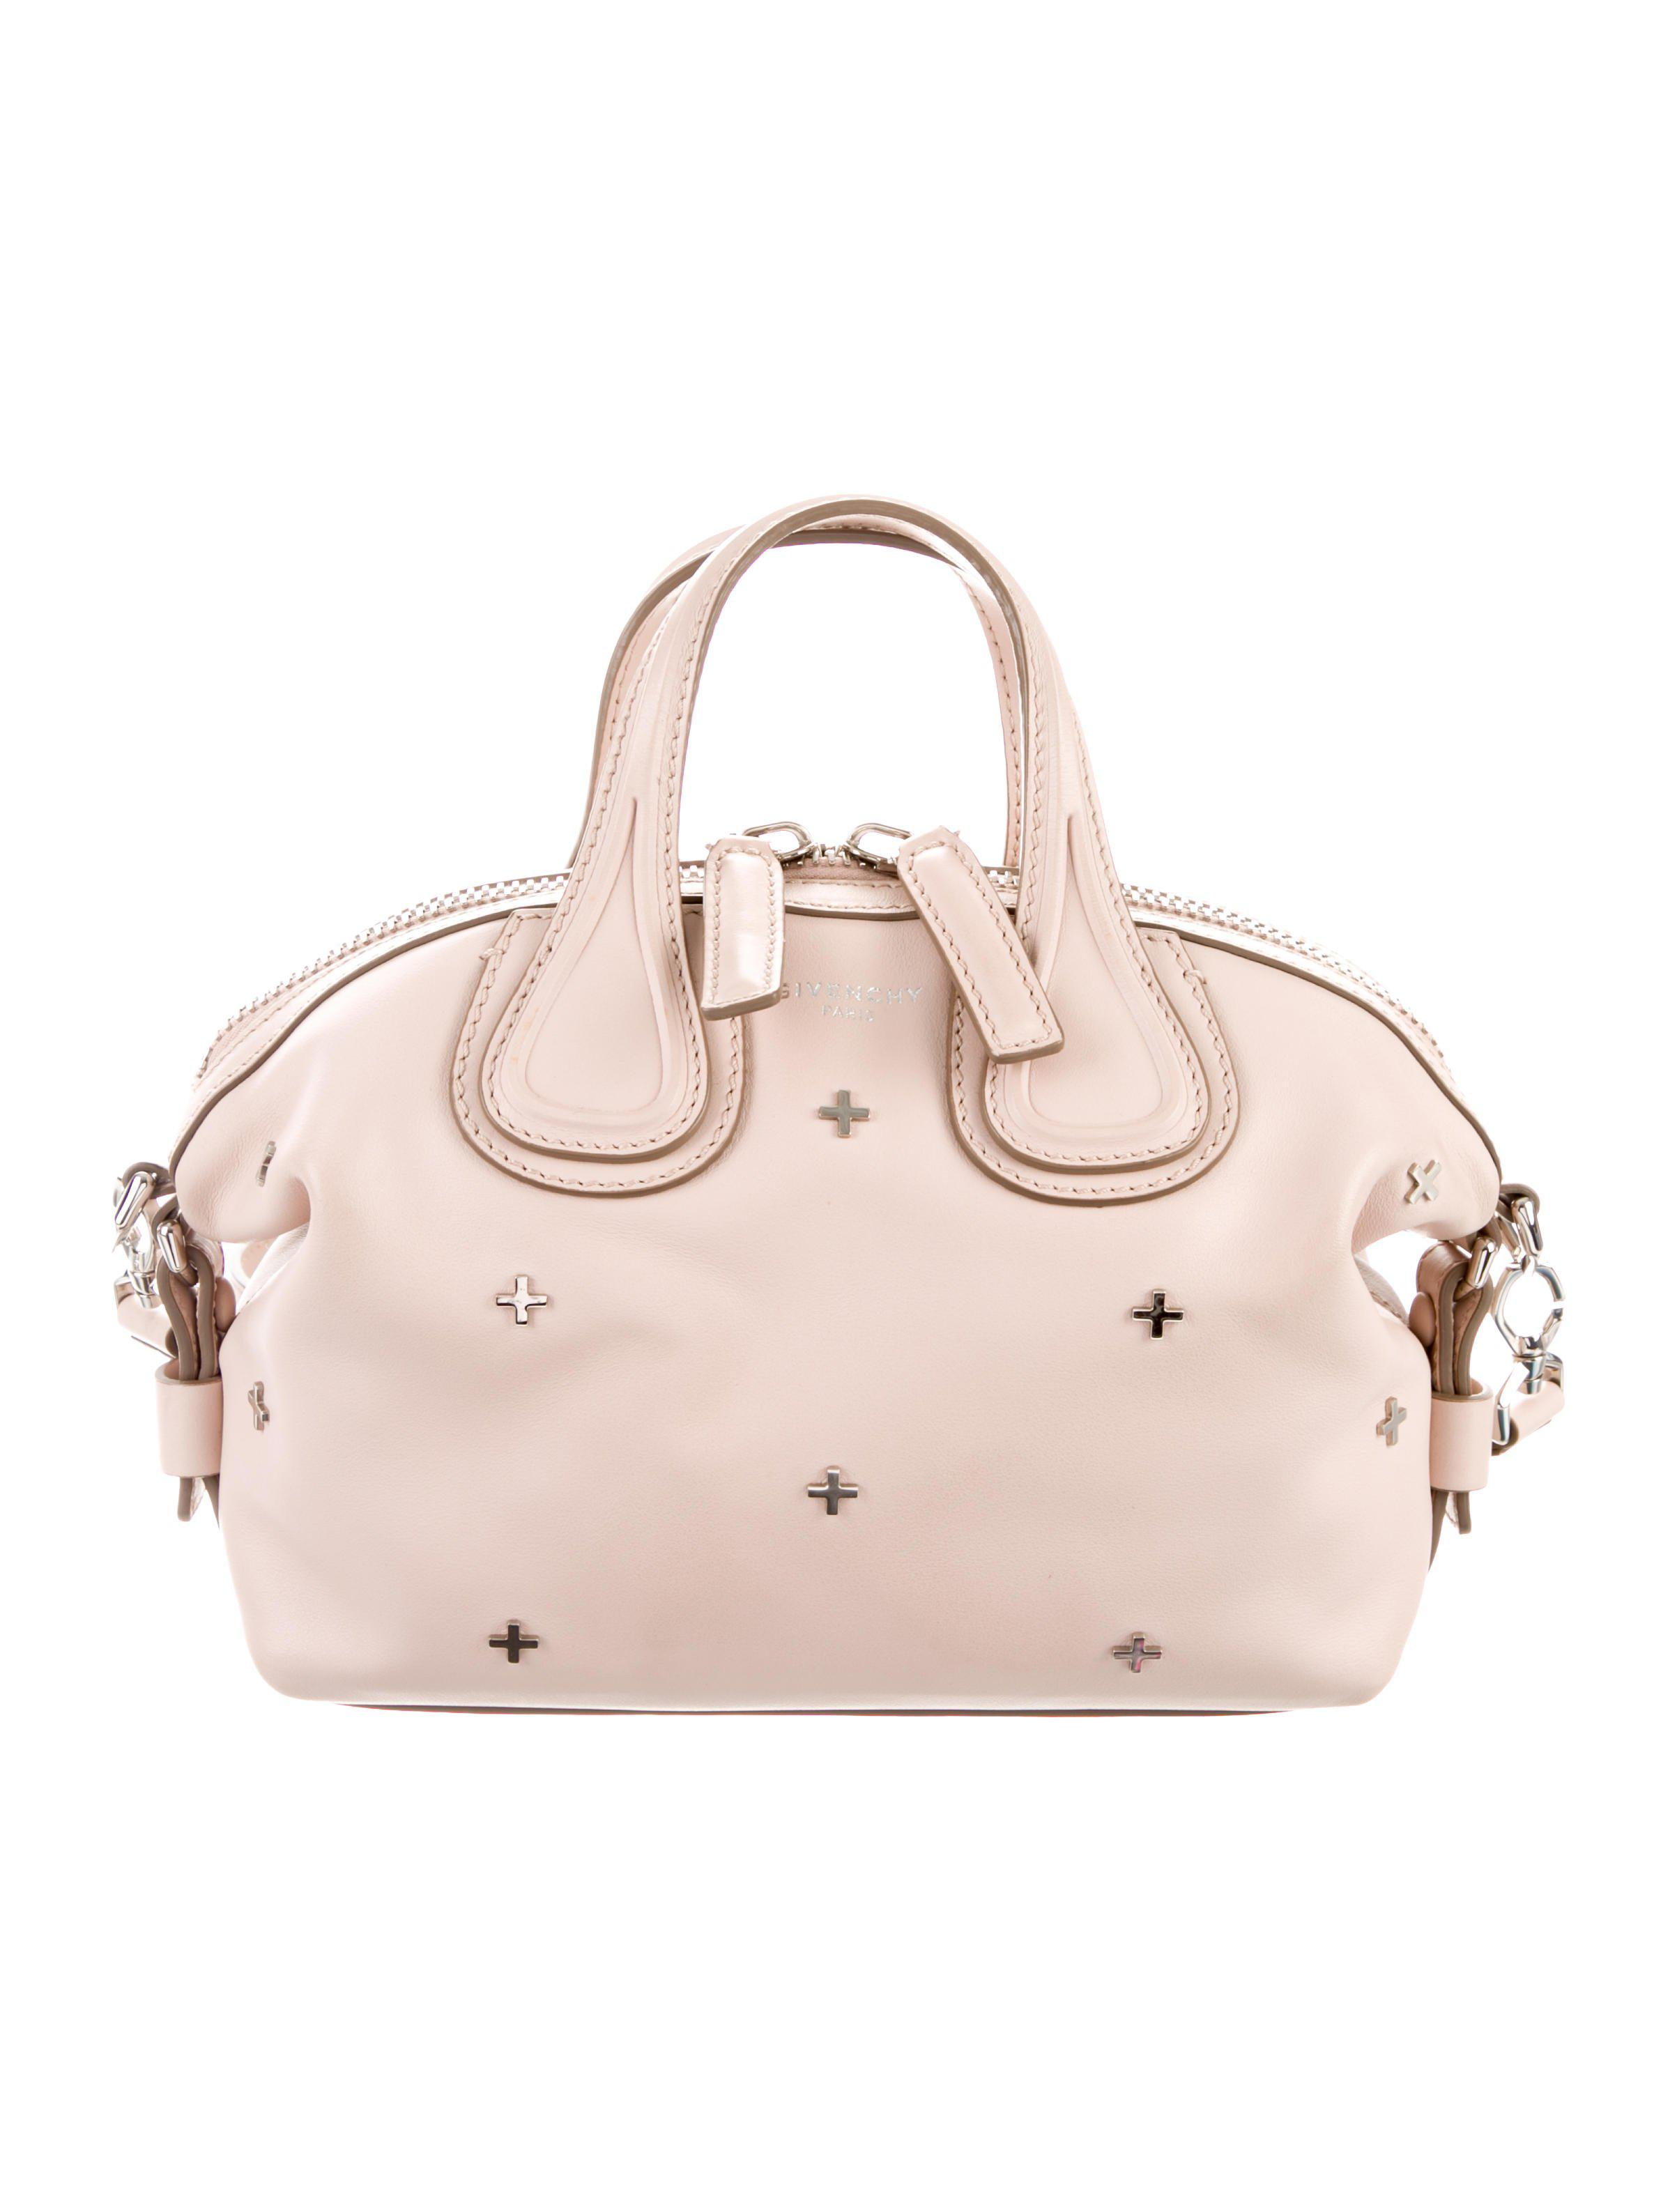 5fa02bb9a359 Lyst - Givenchy Micro Nightingale Satchel Pink in Metallic